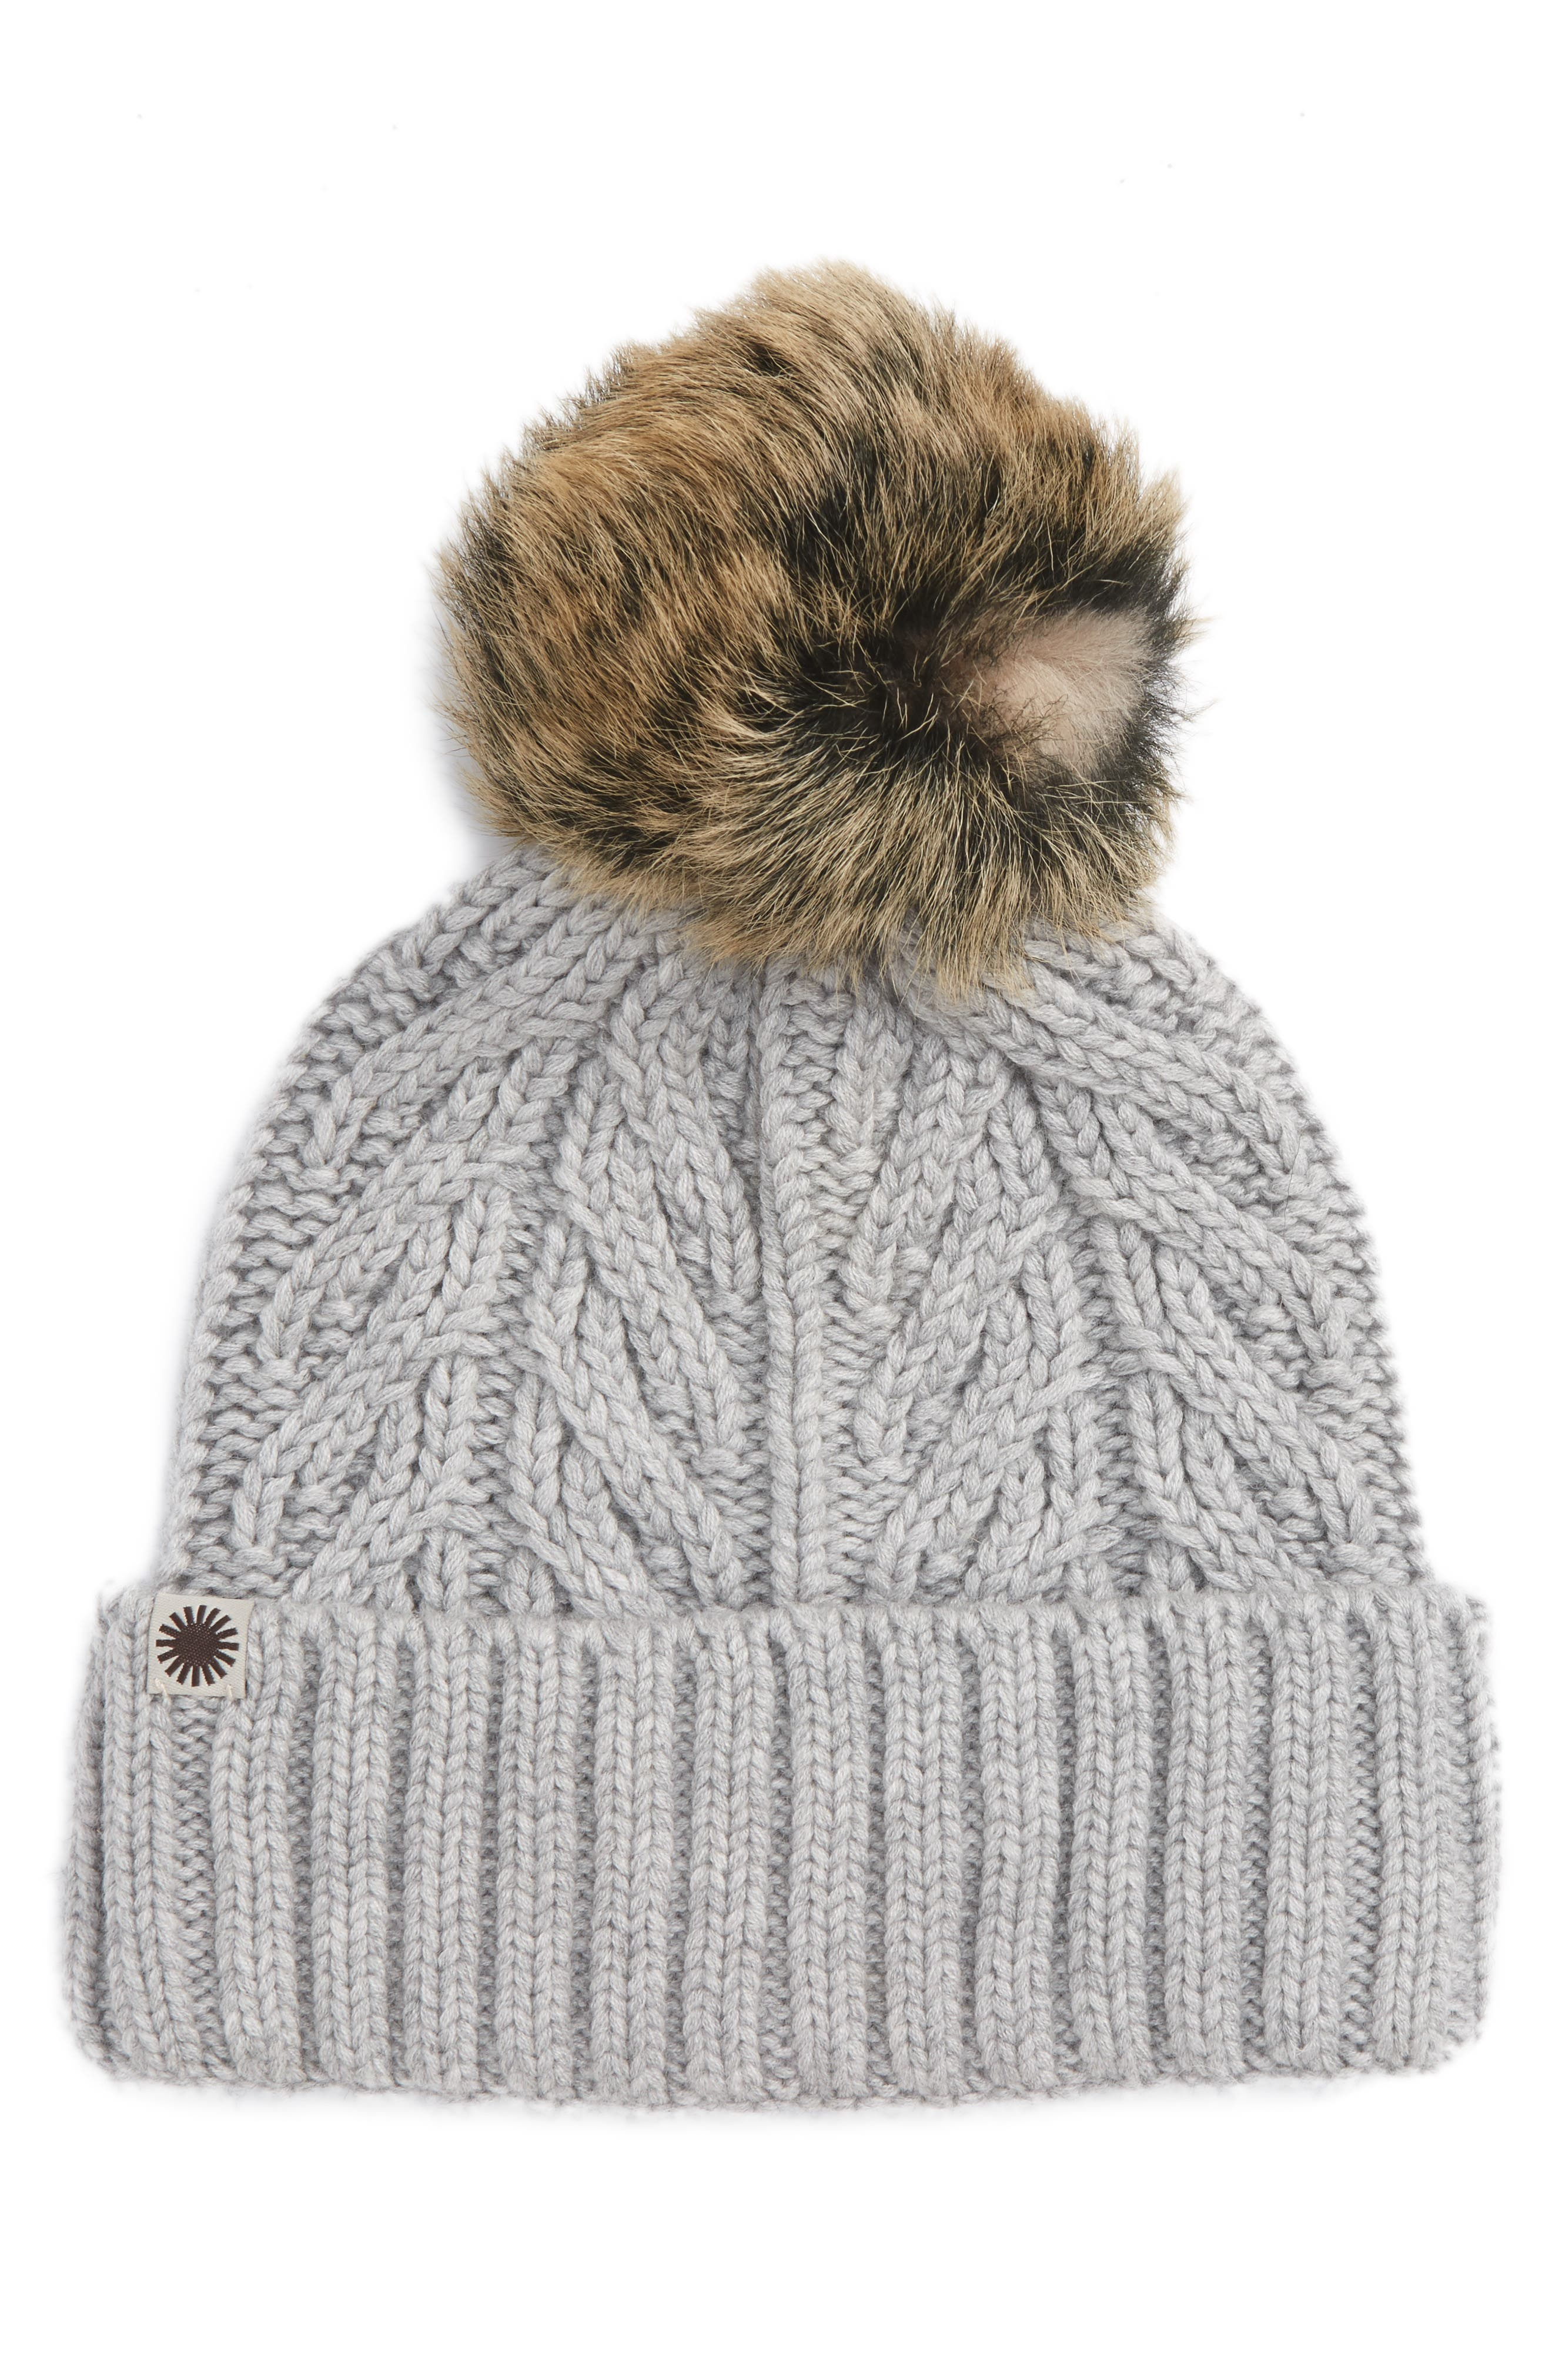 UGG<sup>®</sup> Cable Knit Cuff Hat with Genuine Shearling Pom,                         Main,                         color, Sterling Heather